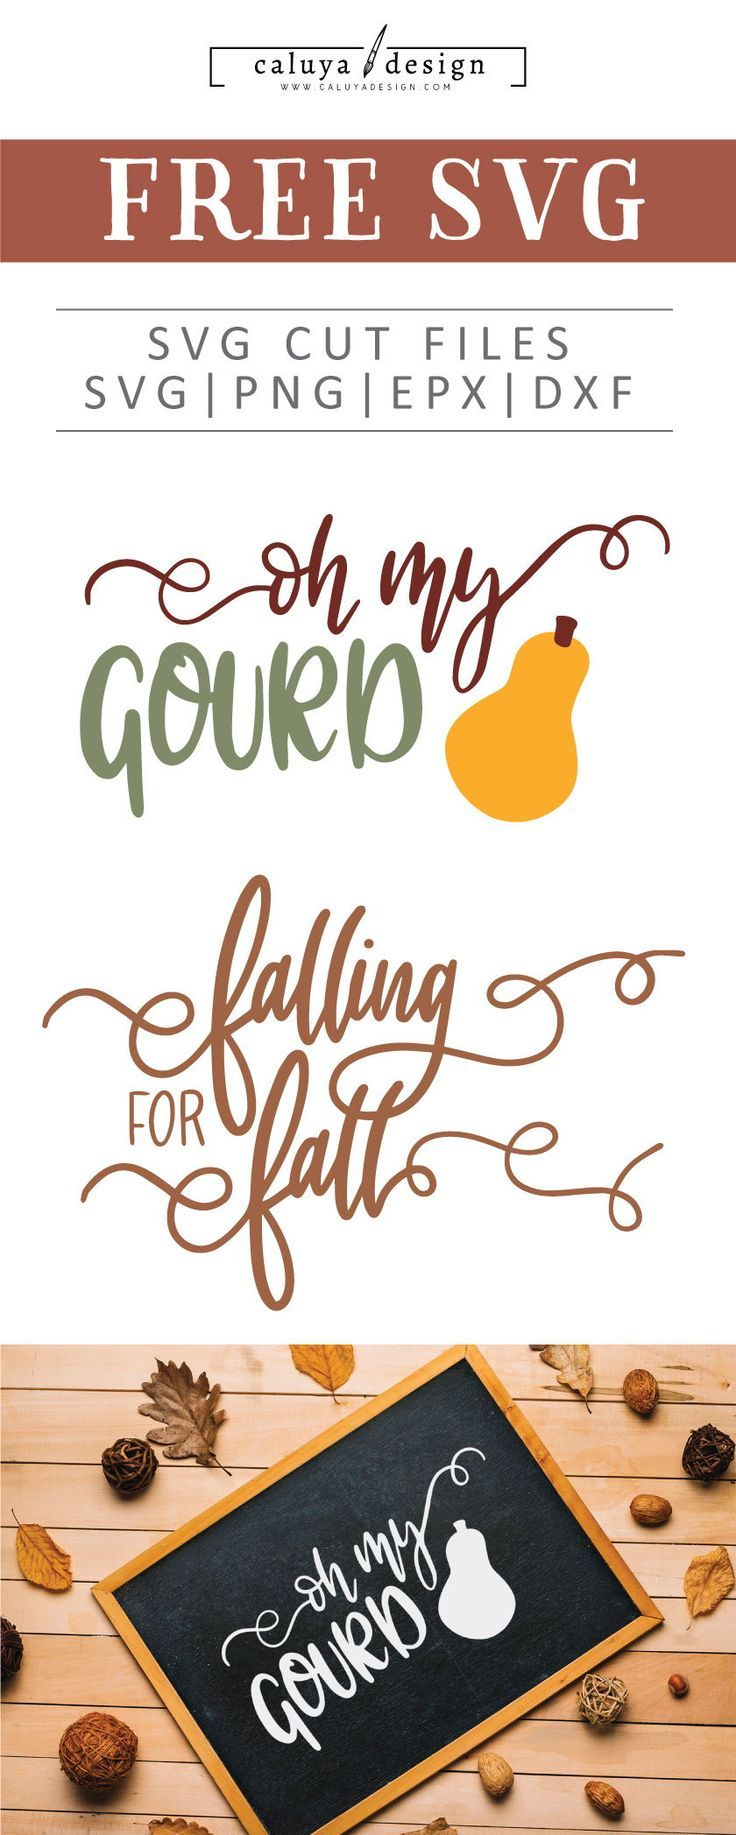 Free Oh My Gourd Svg Png Eps Dxf By Caluya Design Free Printable Clip Art Silhouette Cards Cricut Halloween